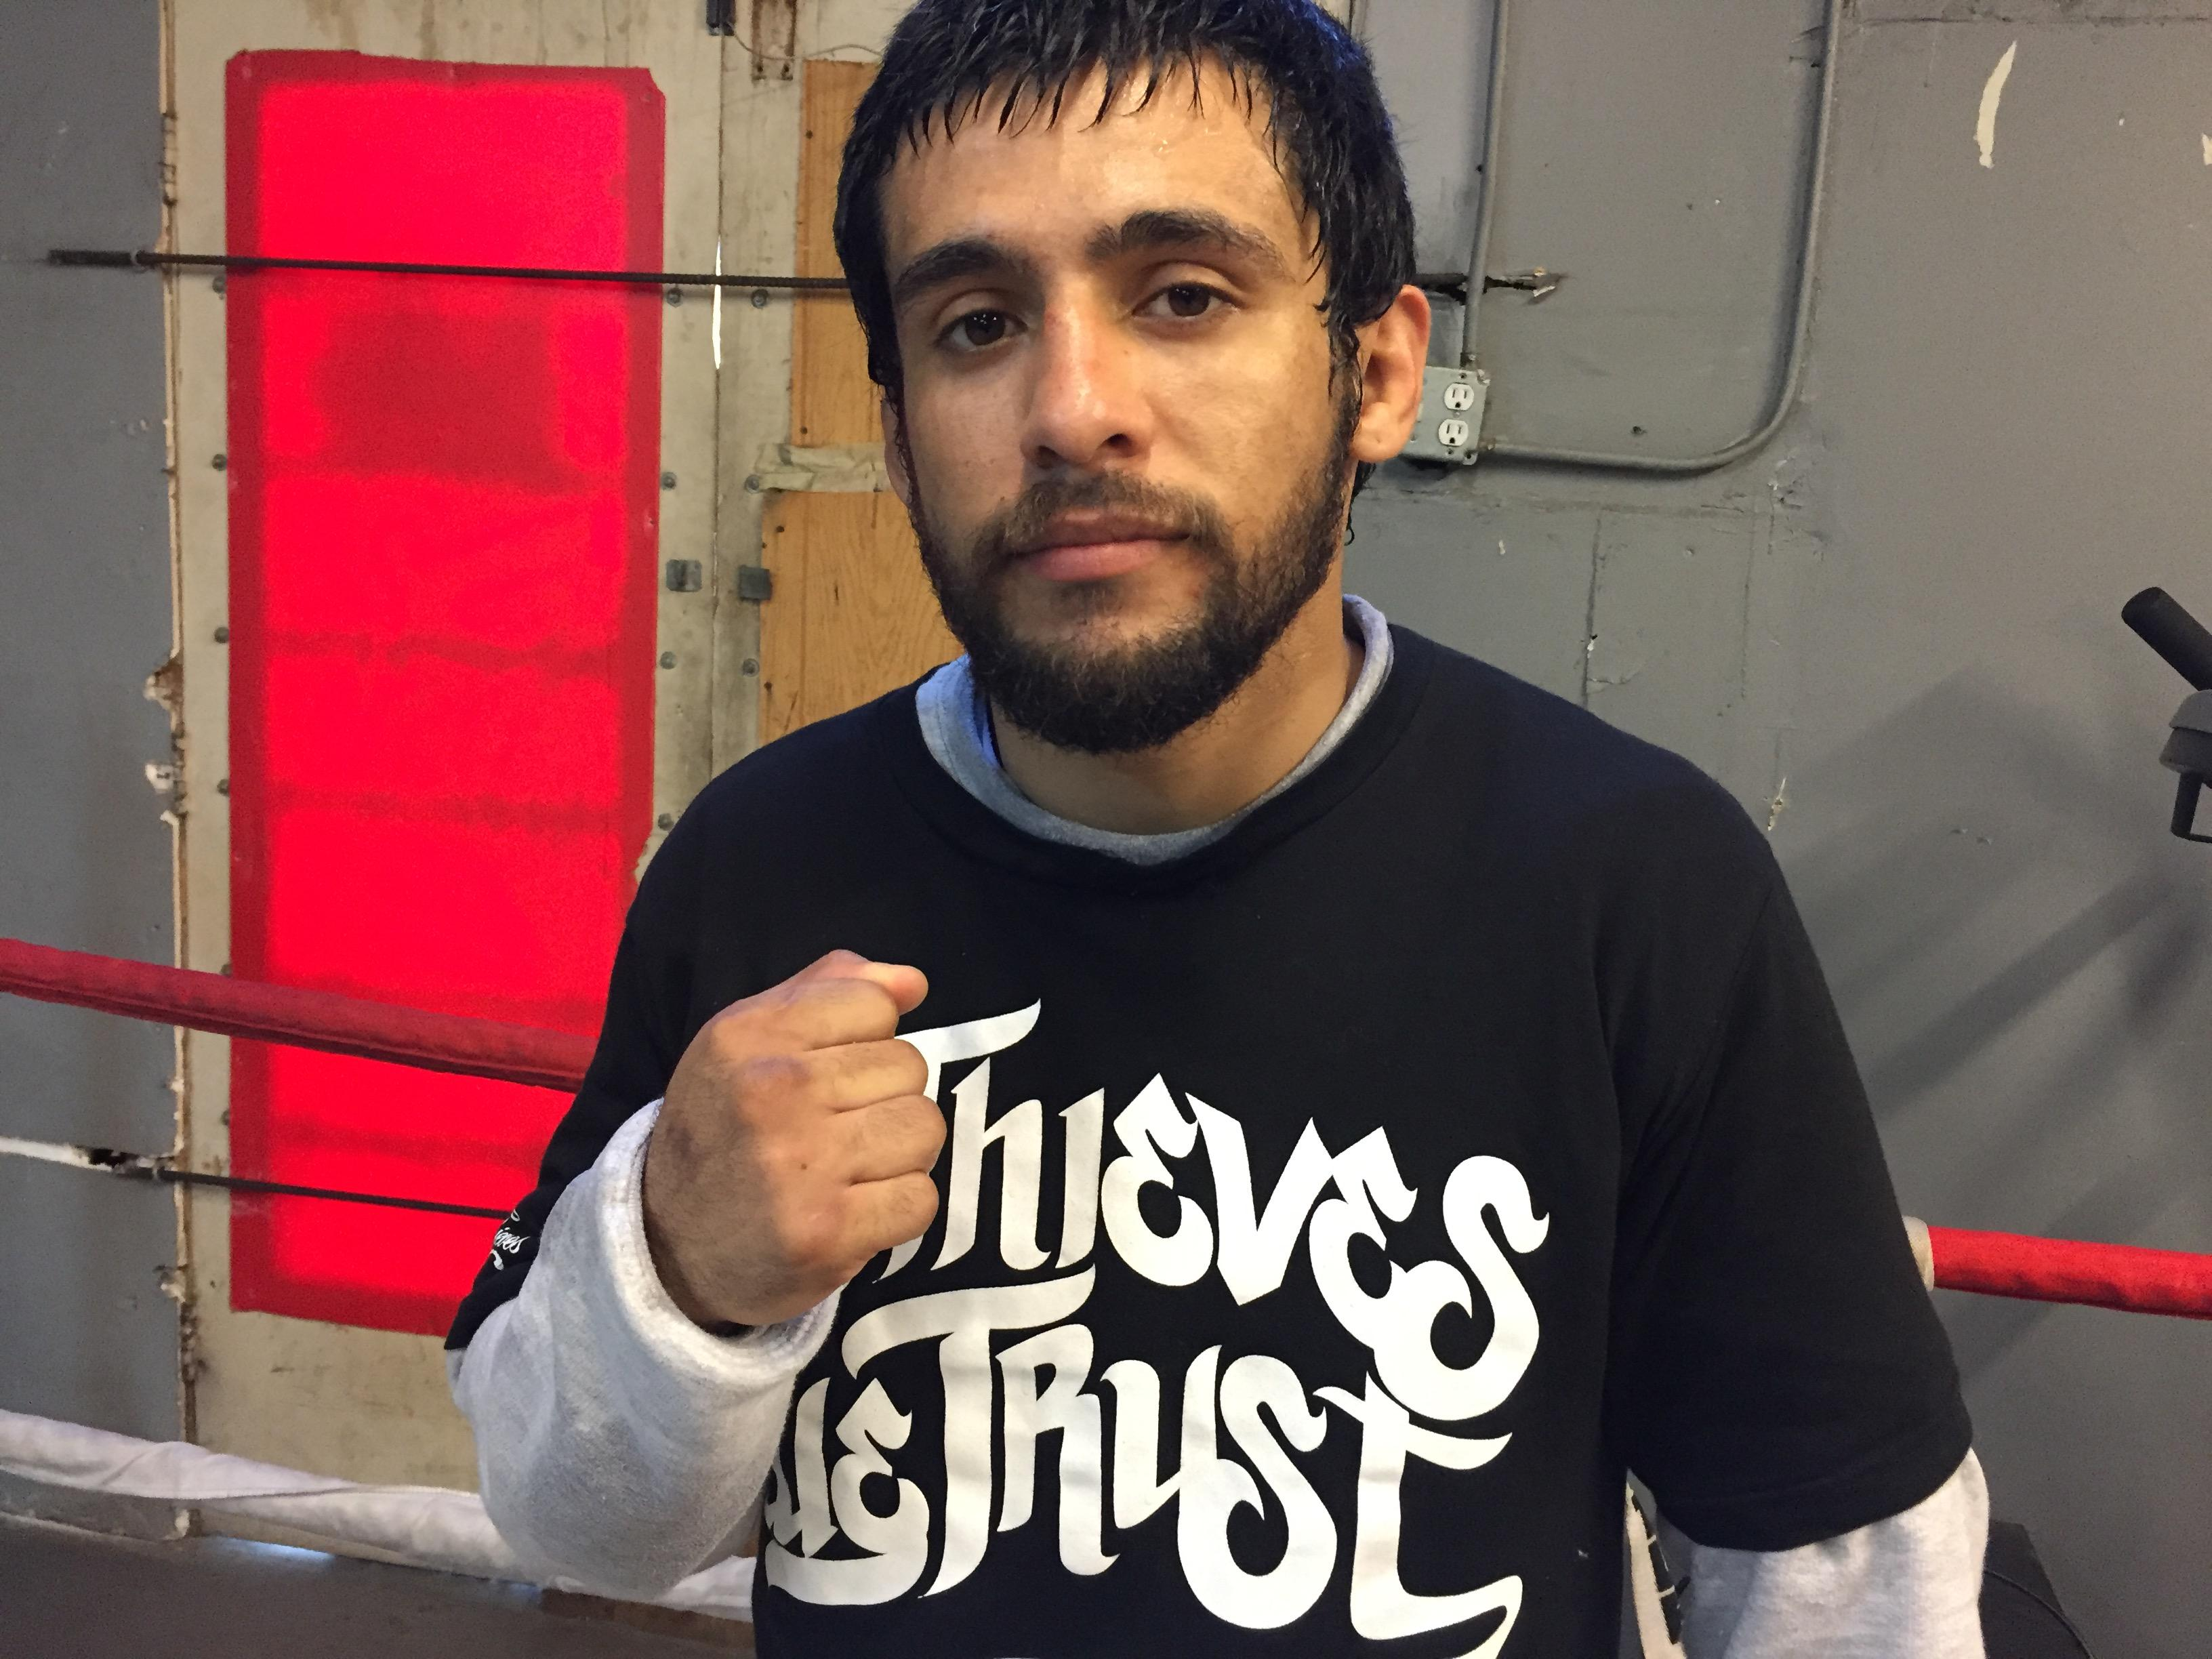 In addition to mixed martial arts, becoming a parent has helped Fierro turn his life around. He now has three small kids of his own, plus two stepchildren.